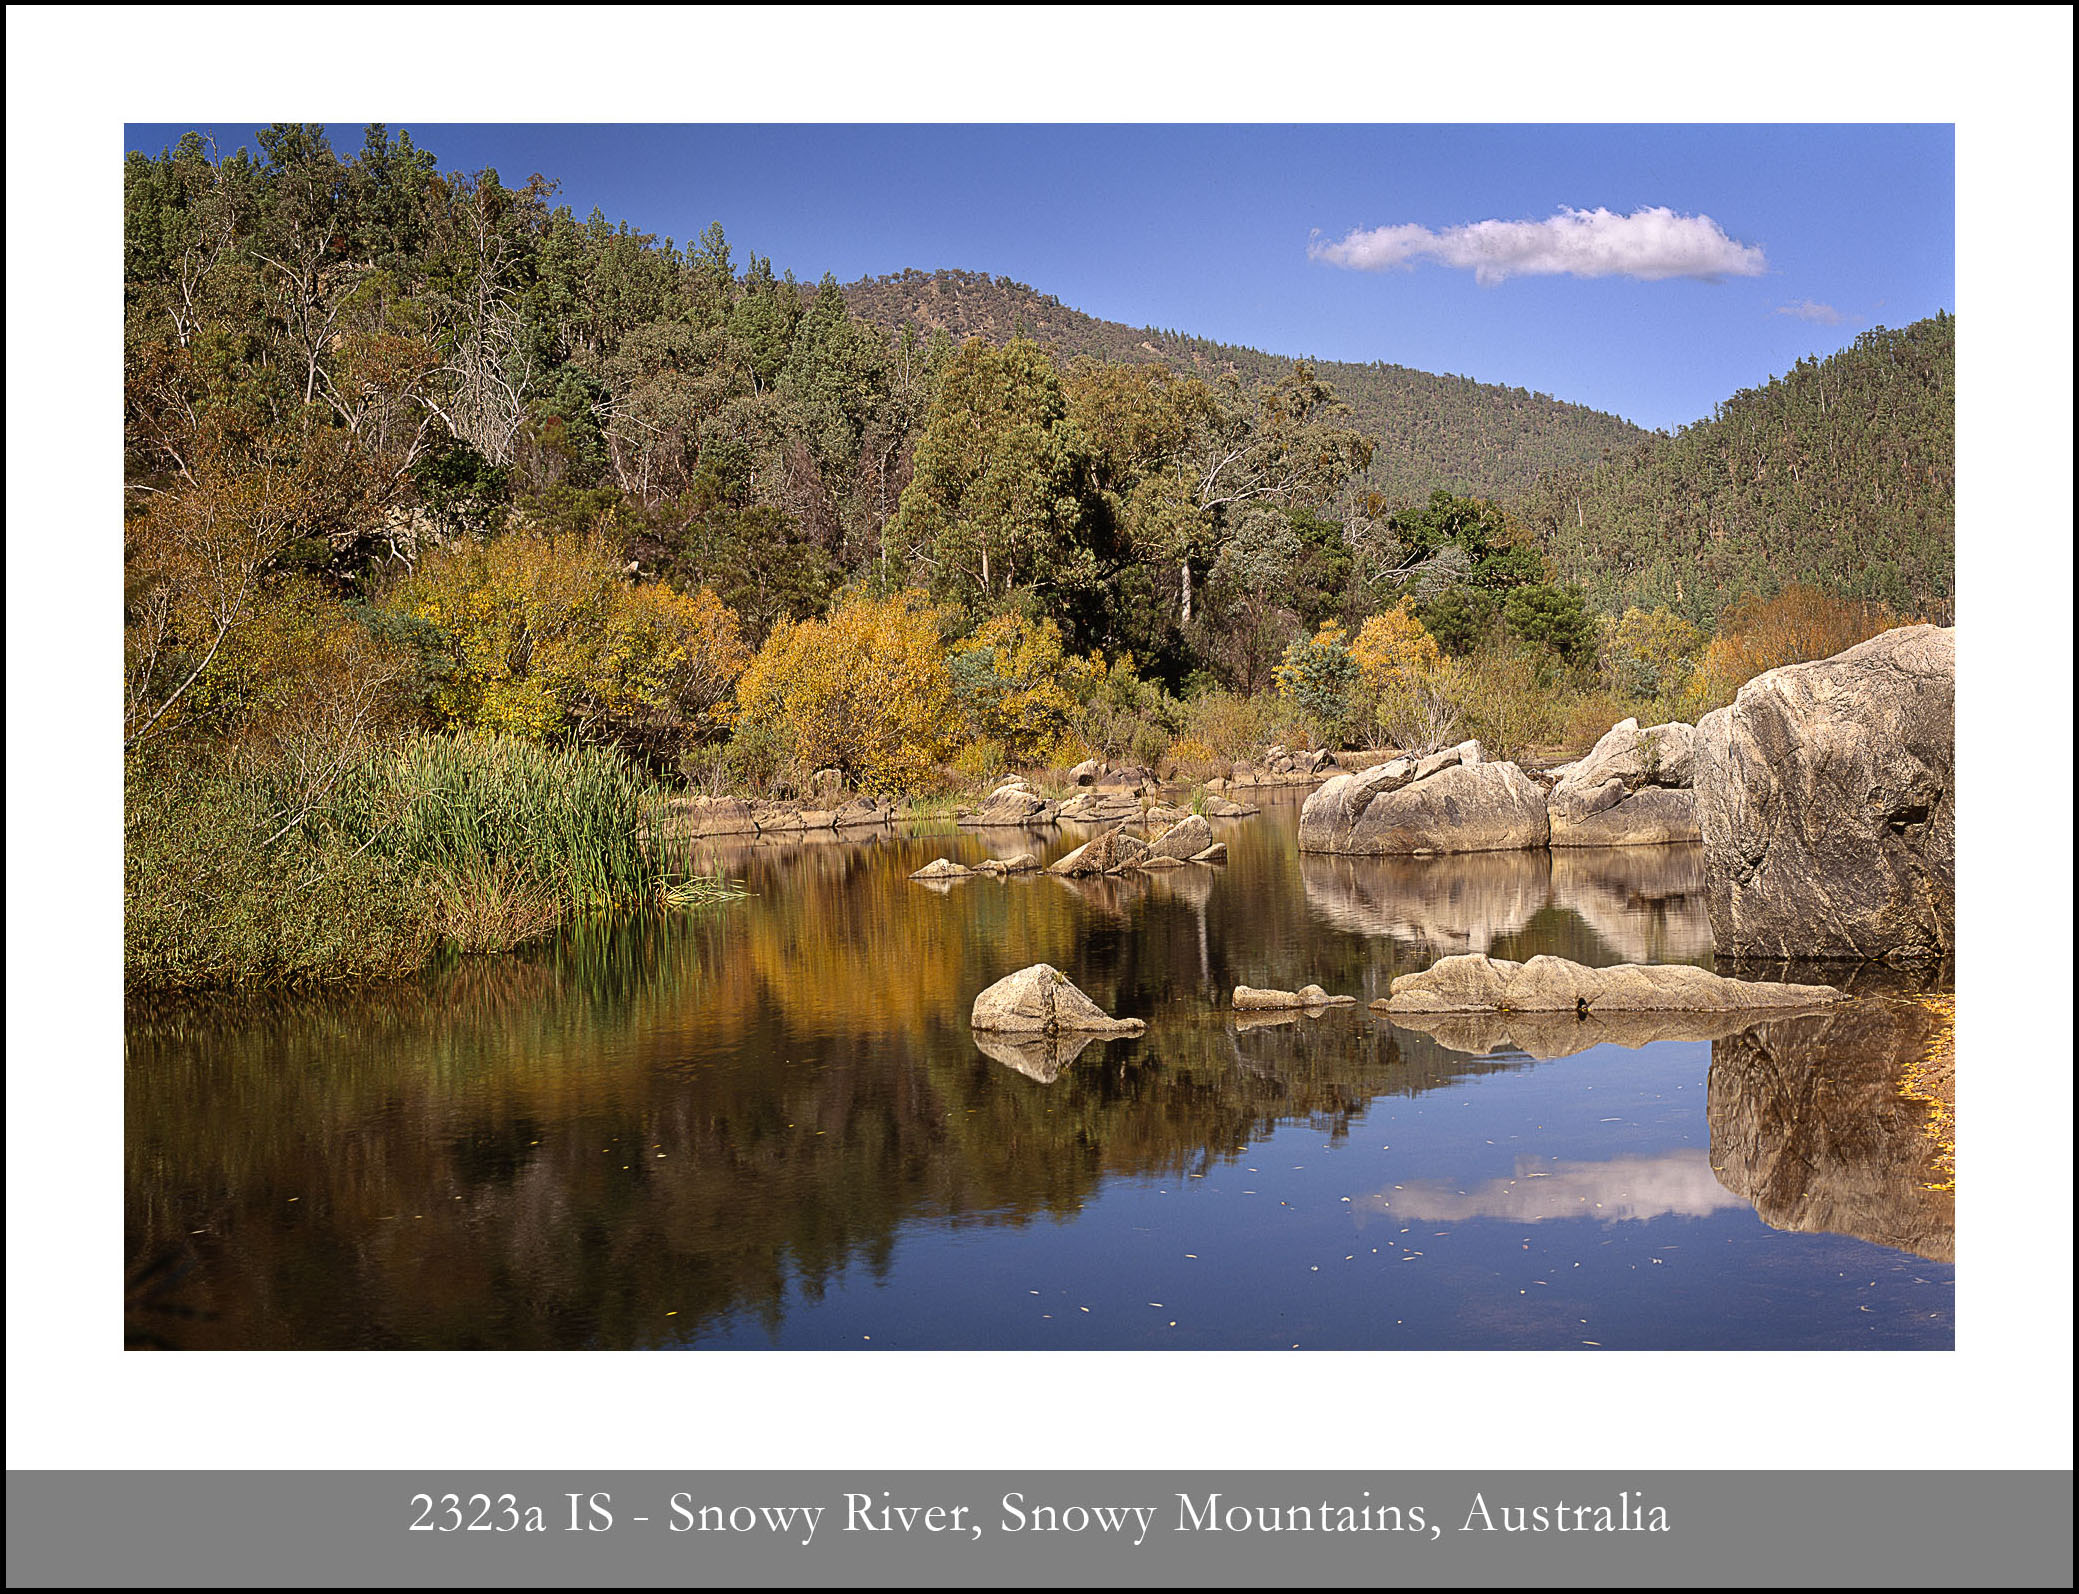 Snowy River, Snowy Mountains, New South Wales, Australia